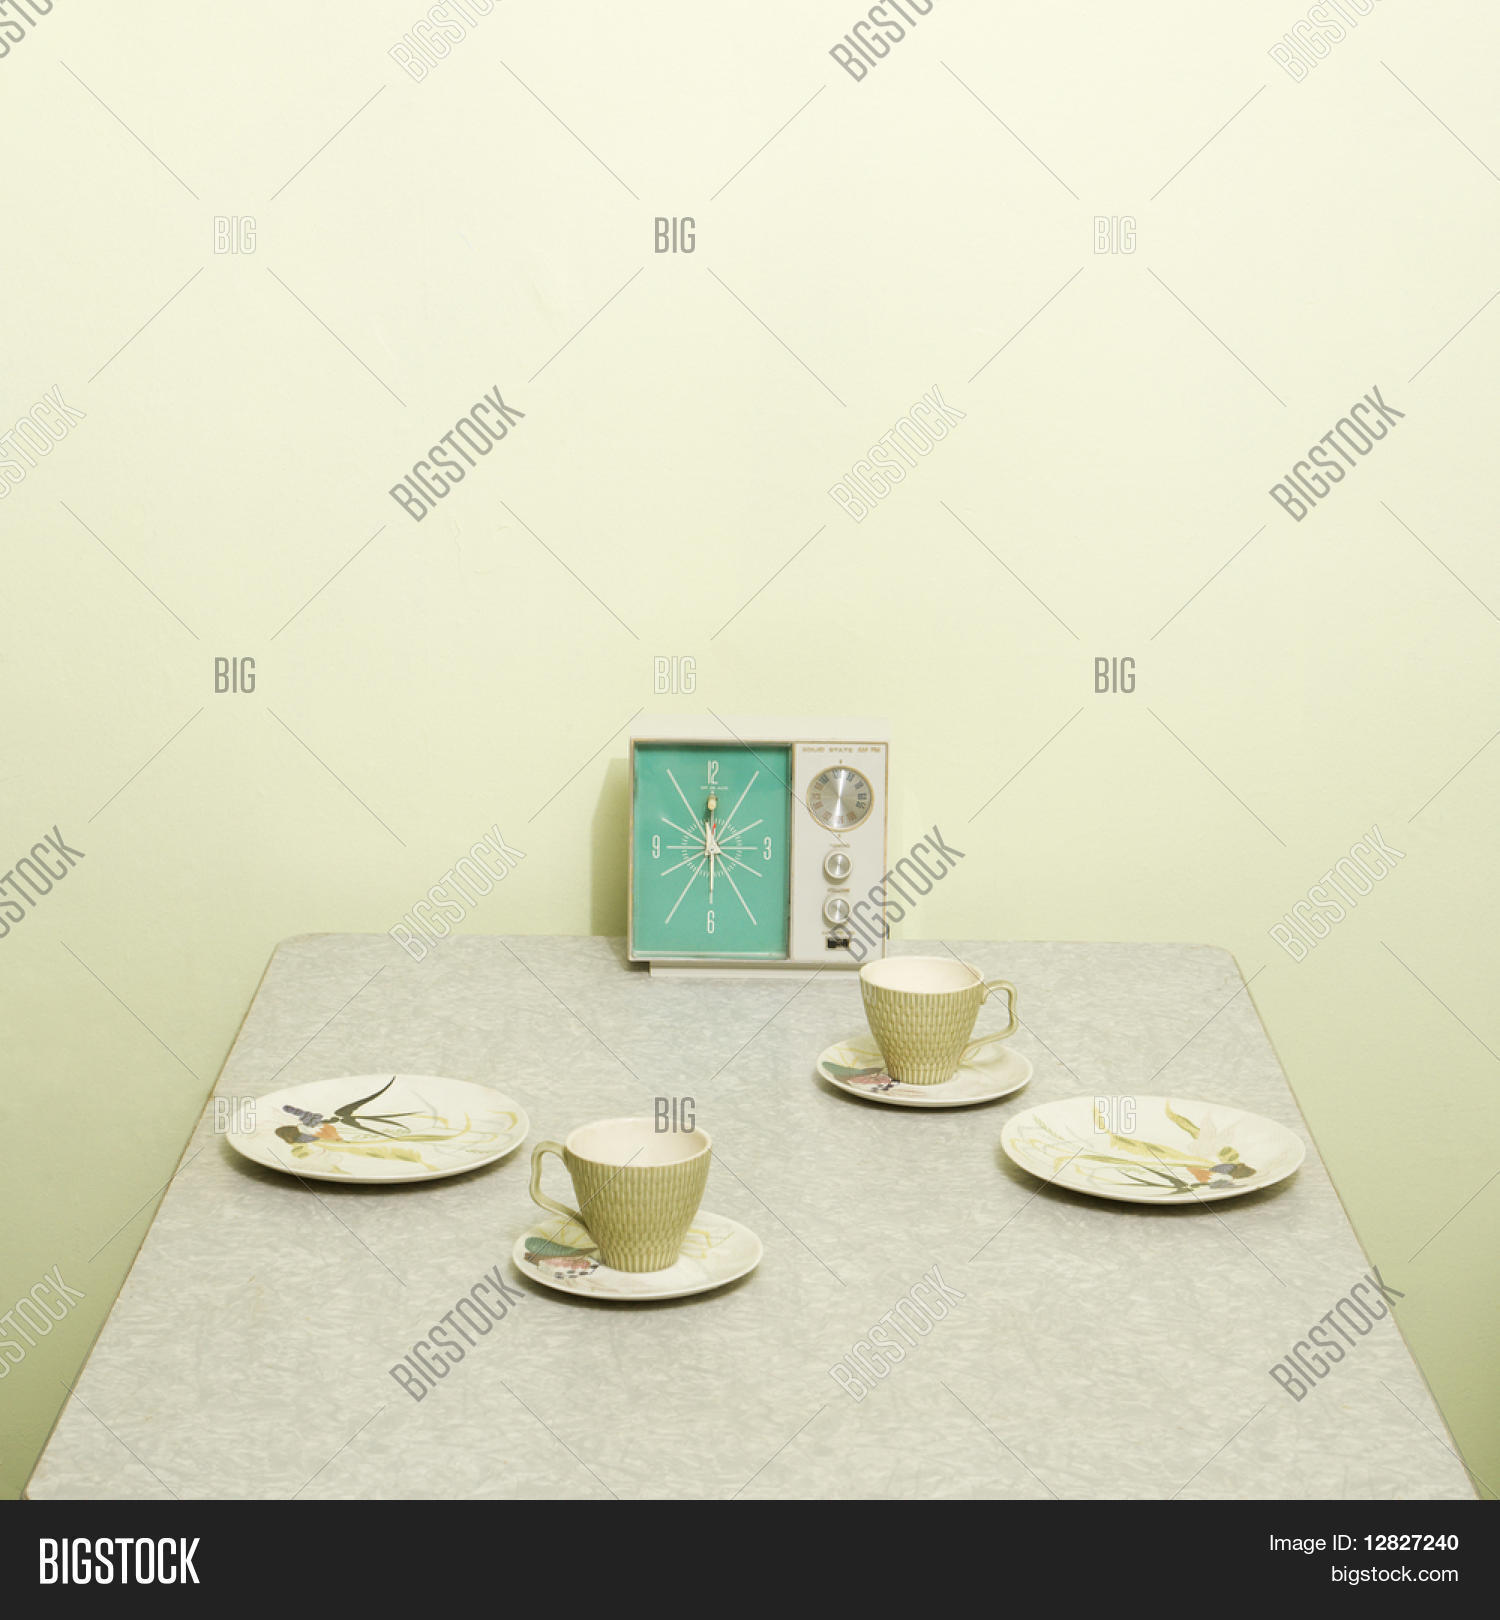 Retro 50 39 s table setting dishes image photo bigstock for Cuisine retro 50 s